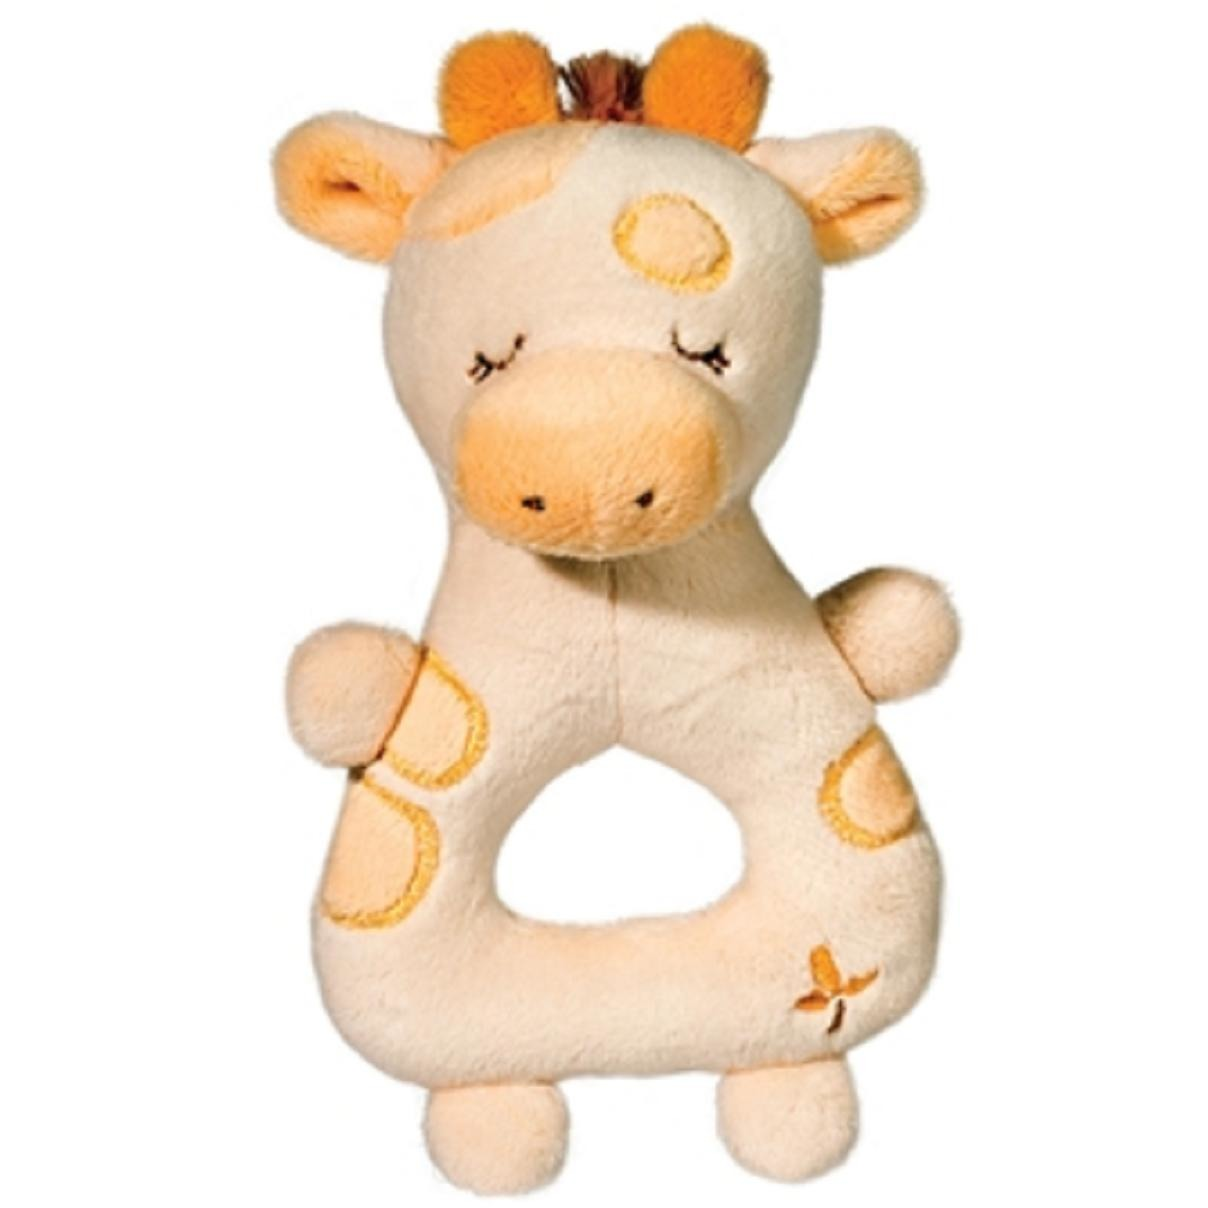 7 Inch Giraffe Plush Stuffed Animal Rattle Baby Toy By Douglas